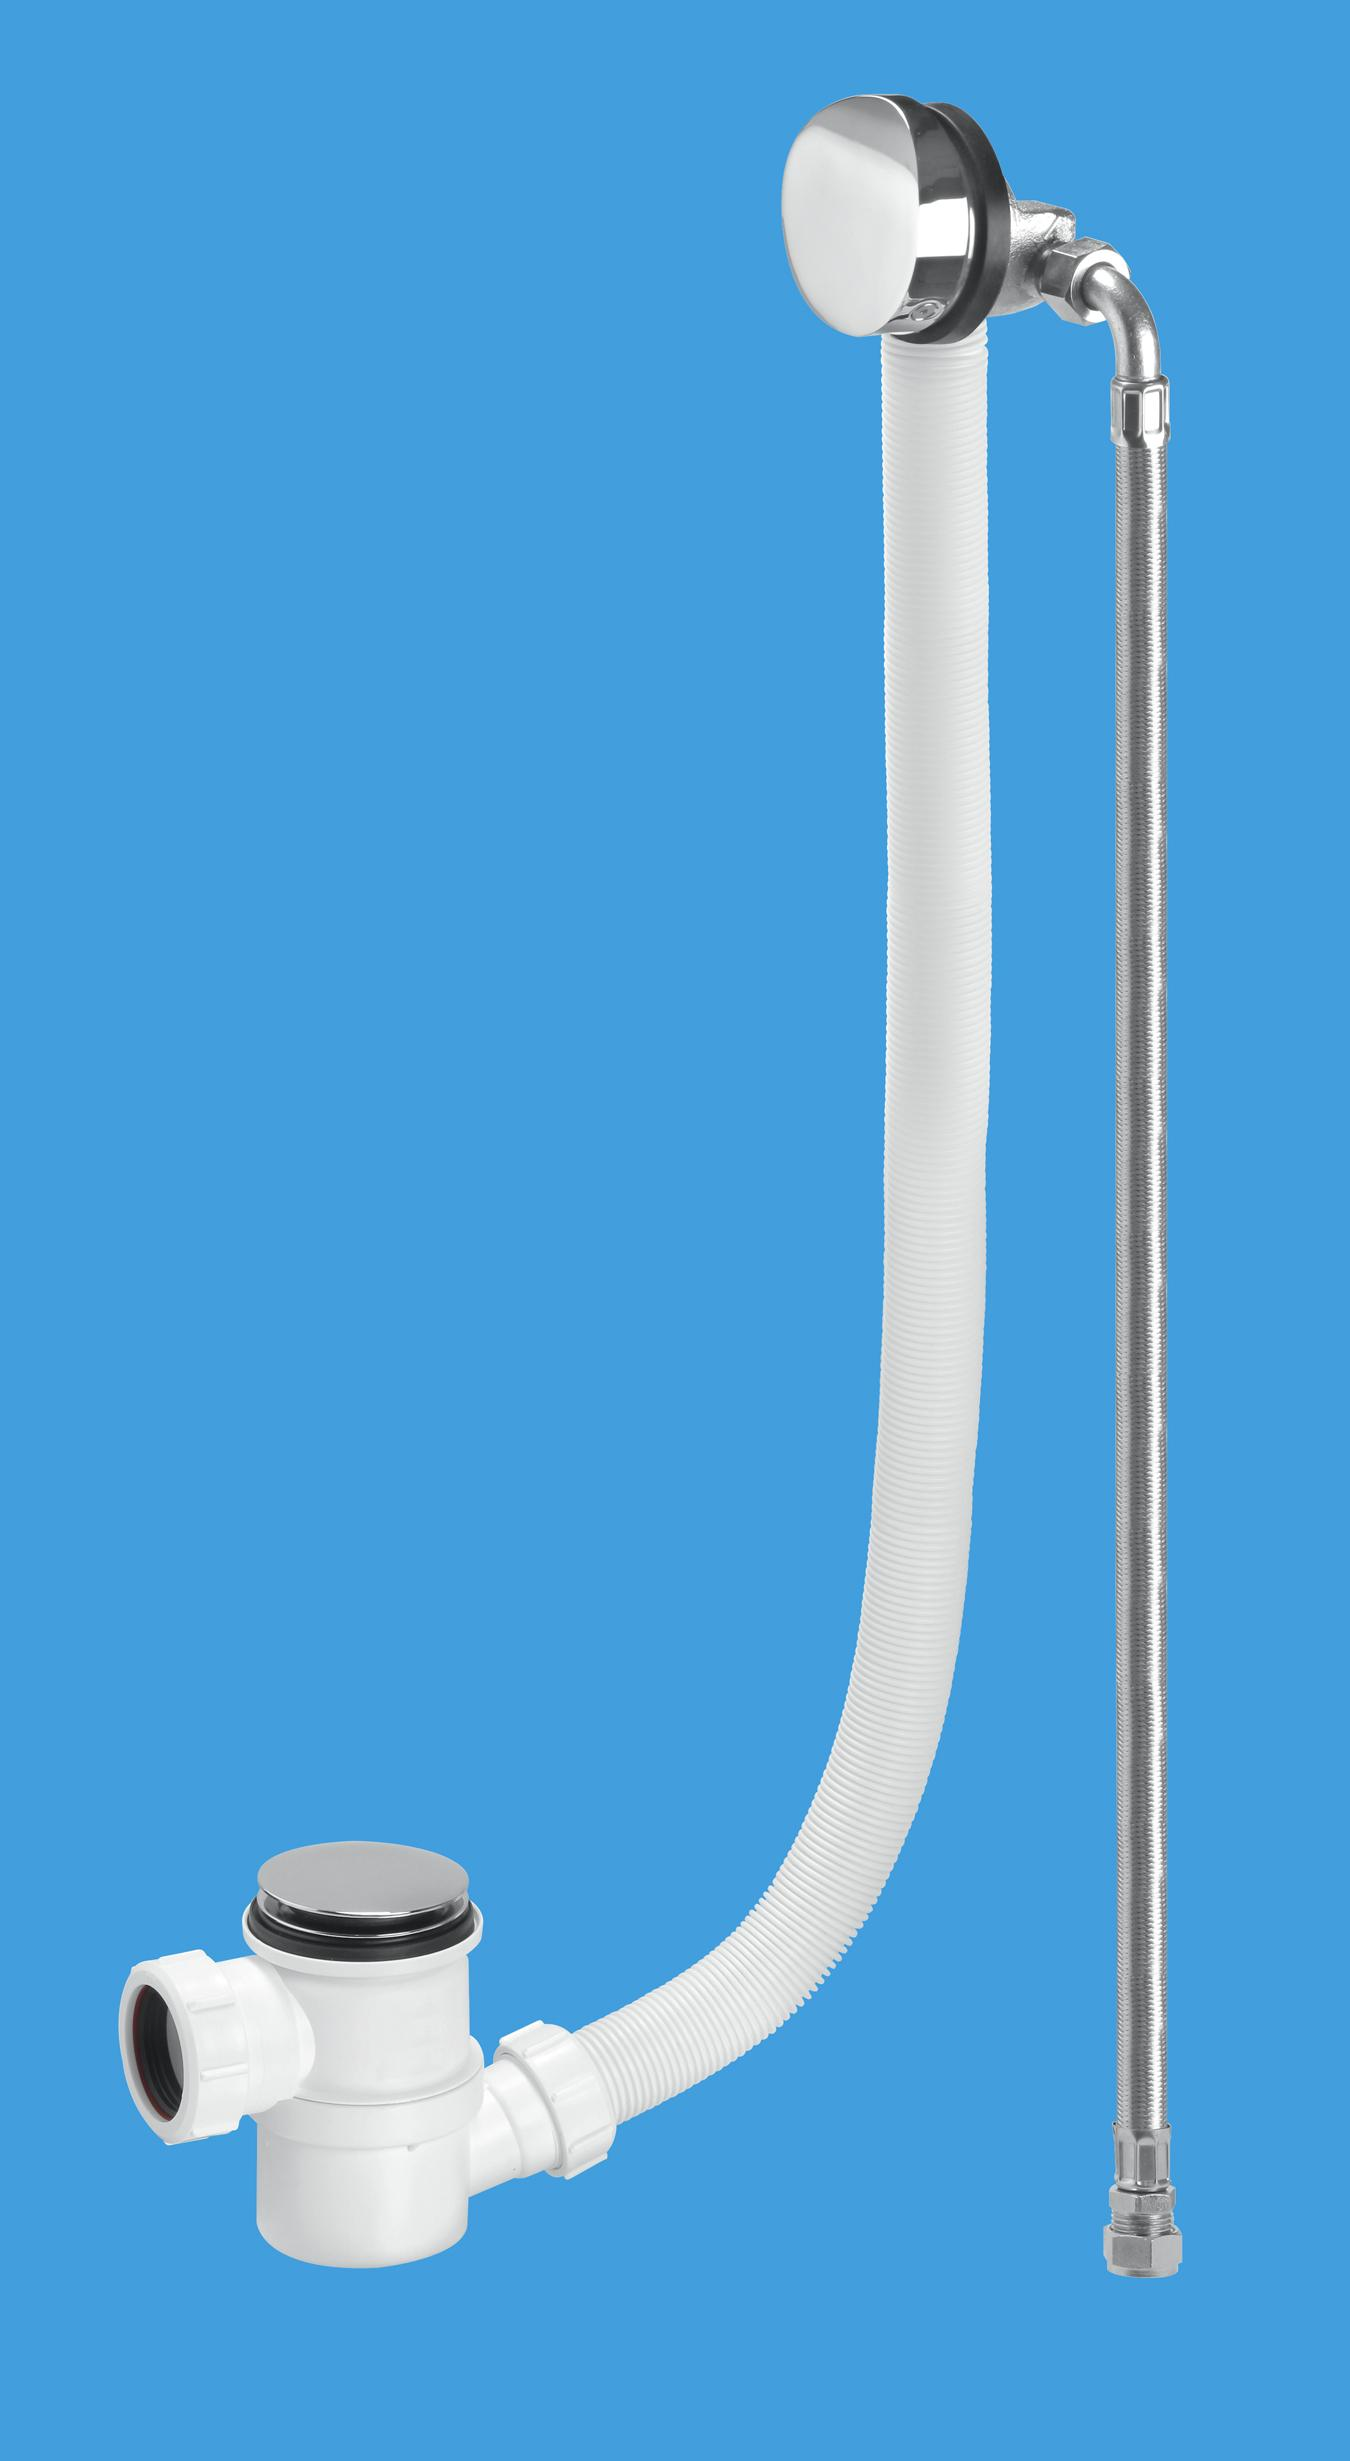 Chrome Plated Brass Bath Filler and Overflow (Top Access Clicker)